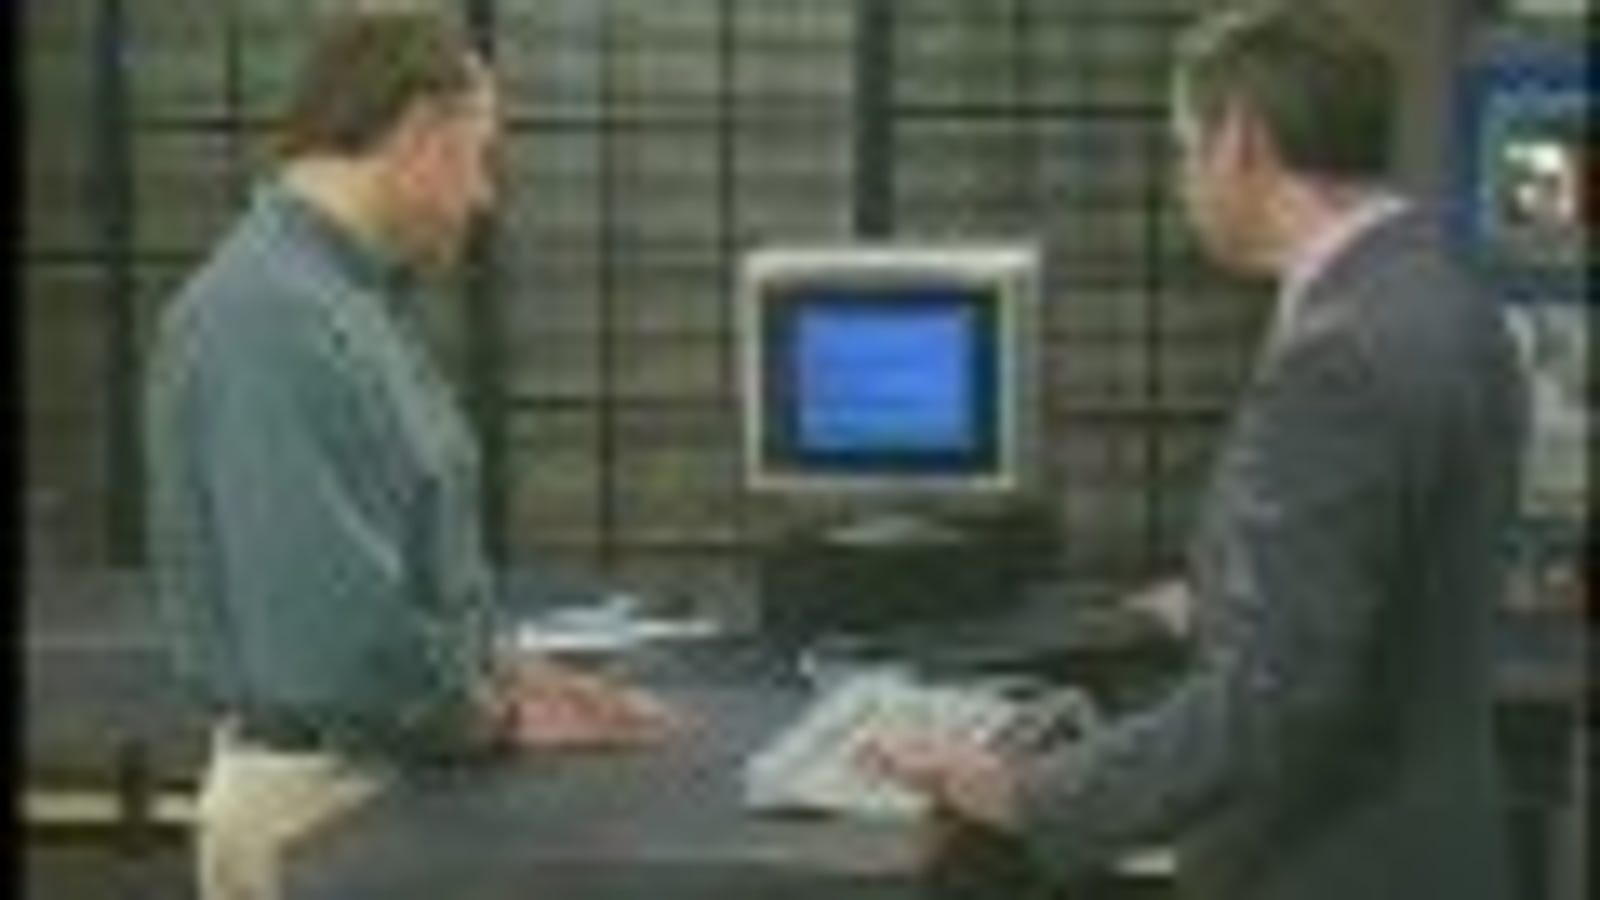 An In-Depth Look at the Mysterious Information Superhighway, Care of 1995